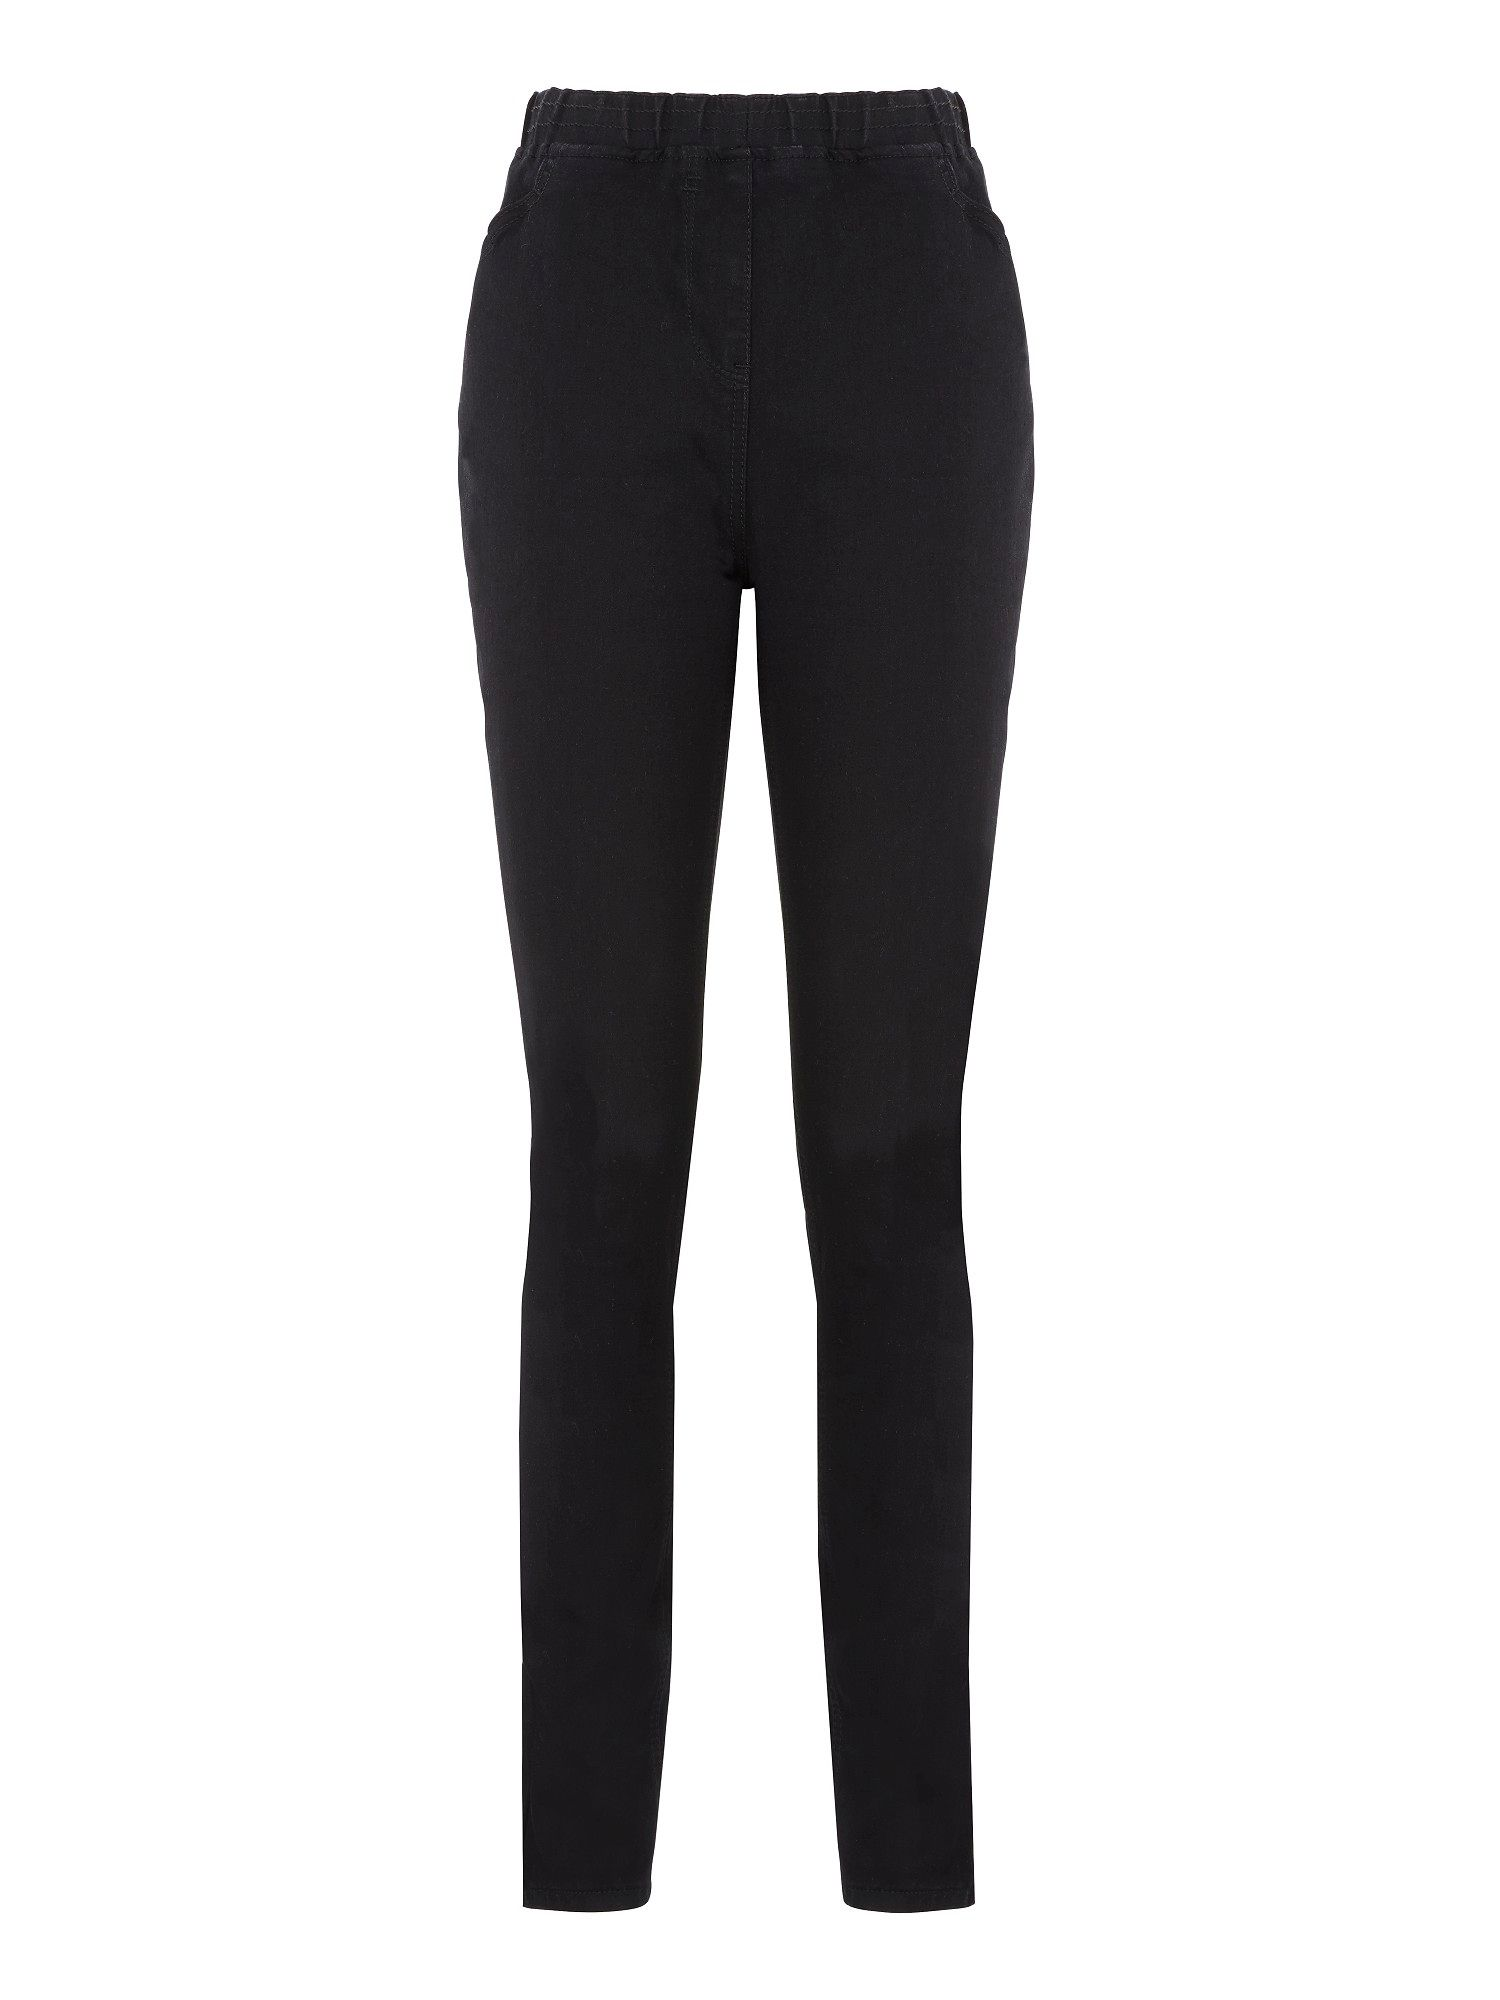 Black stretch denim jeggings petite